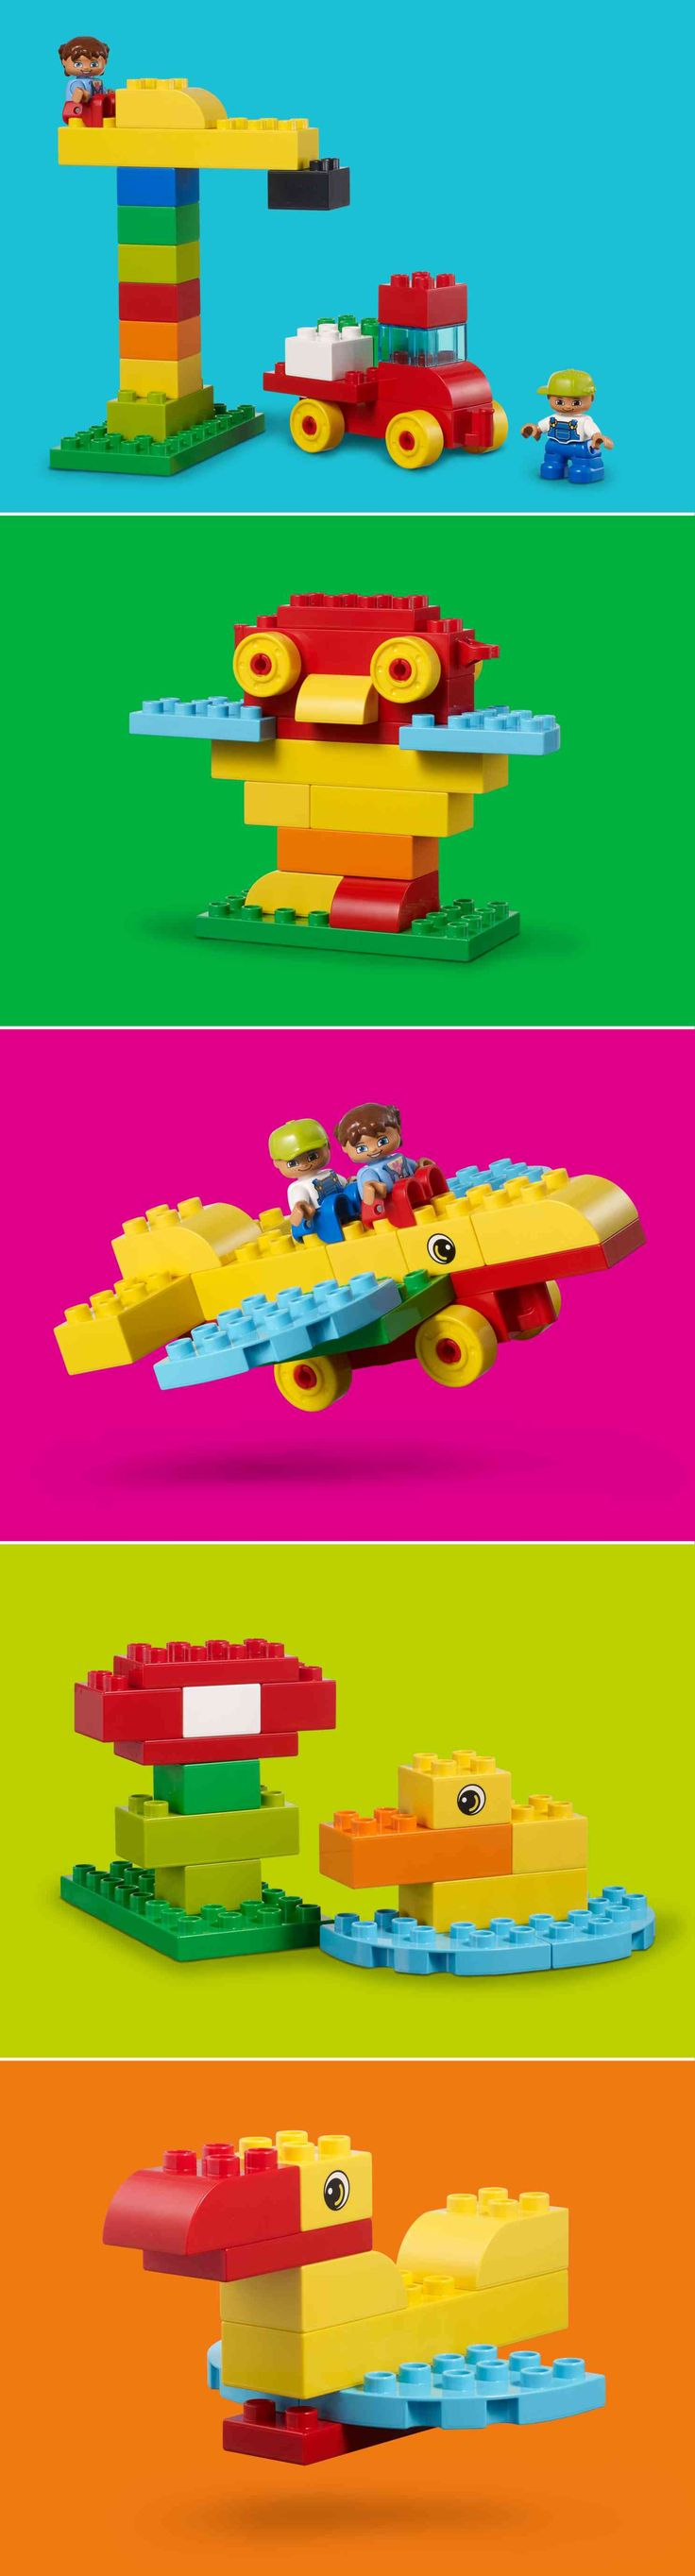 Easy builds with LEGO® DUPLO® - Articles - Family LEGO.com